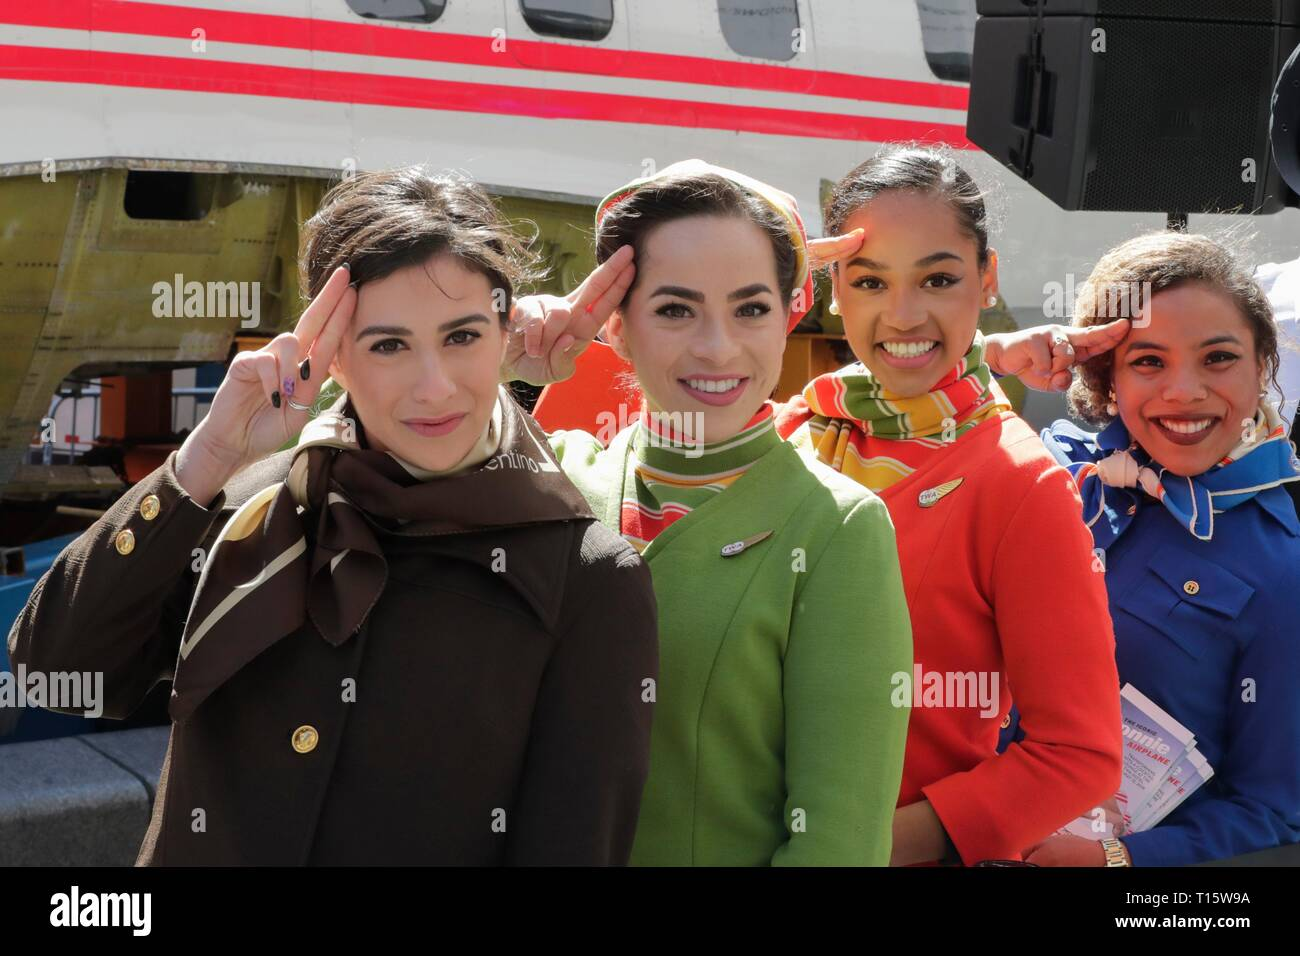 Times Square, New York, USA, March 23, 2019 - Actors dressed as pilots, flight attendants and mechanics from the 1960s and 70s helps celebrate the TWA Hotel Project, including the restoration of the 1958 Lockheed Constellation plane Connie today in Times Square, Manhattan Photo: Luiz Rampelotto/EuropaNewswire | usage worldwide - Stock Image